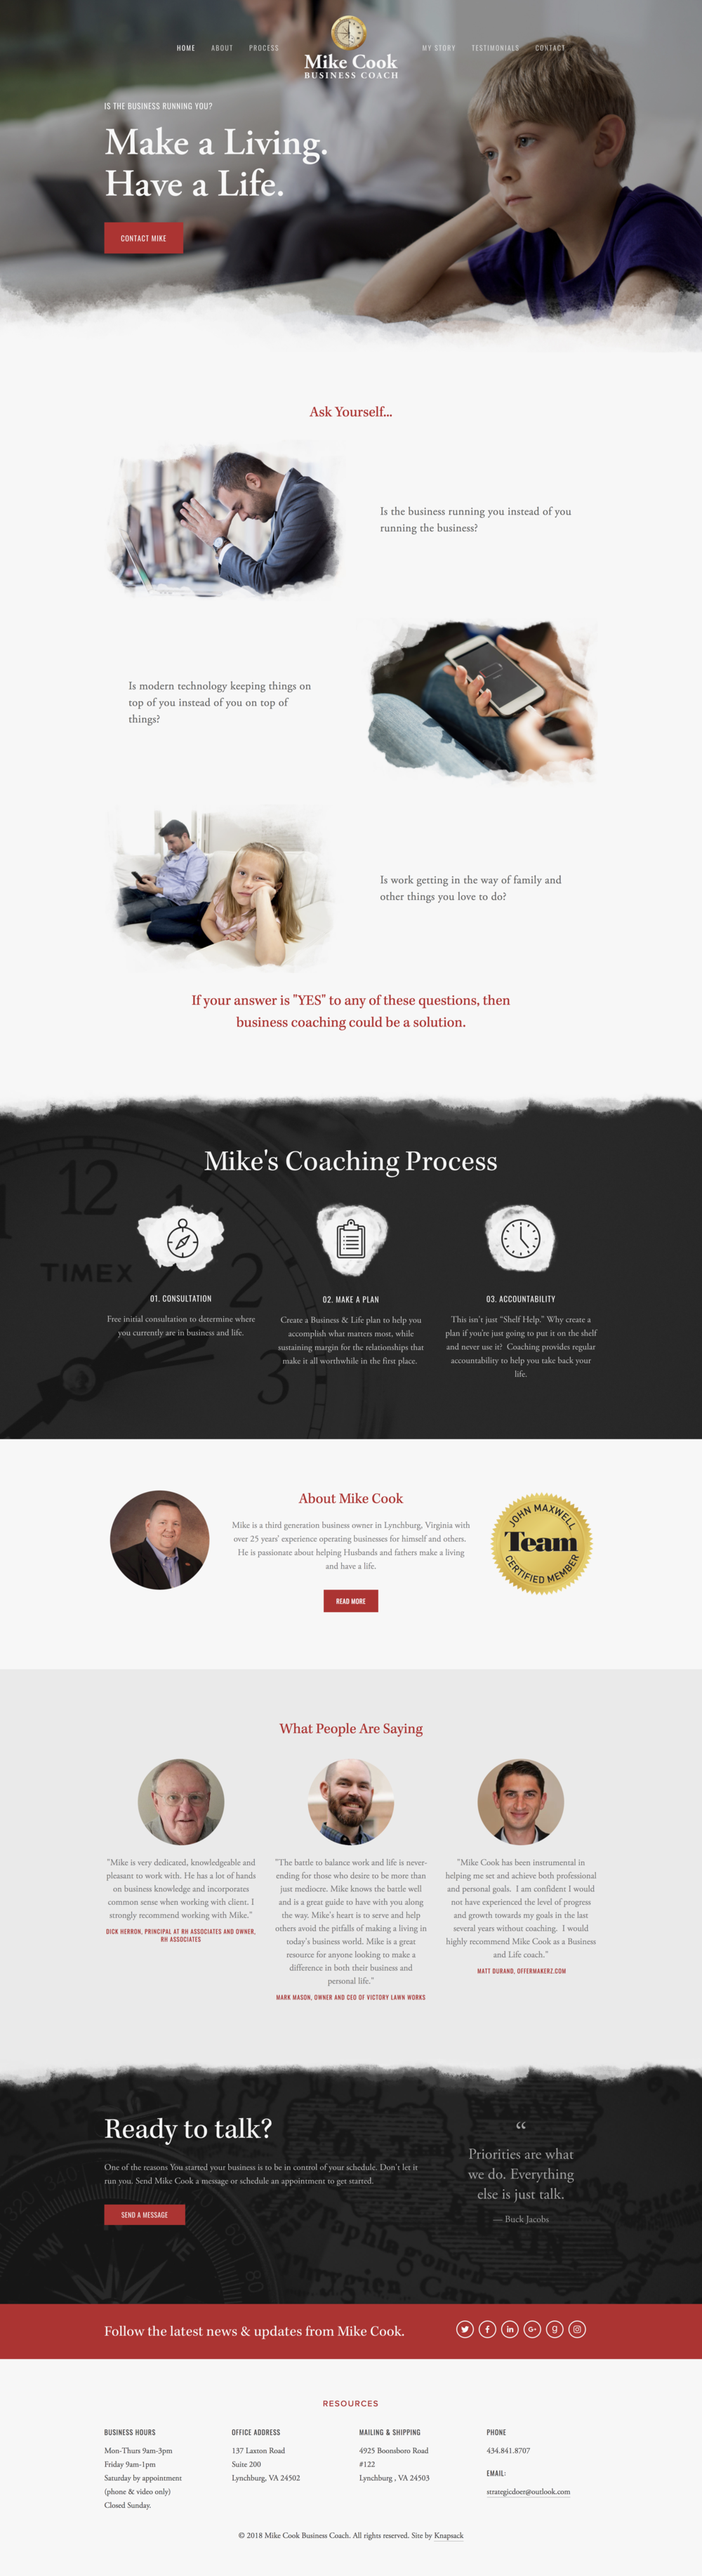 Mike-Cook-Business-Coach-Home-Air.jpg